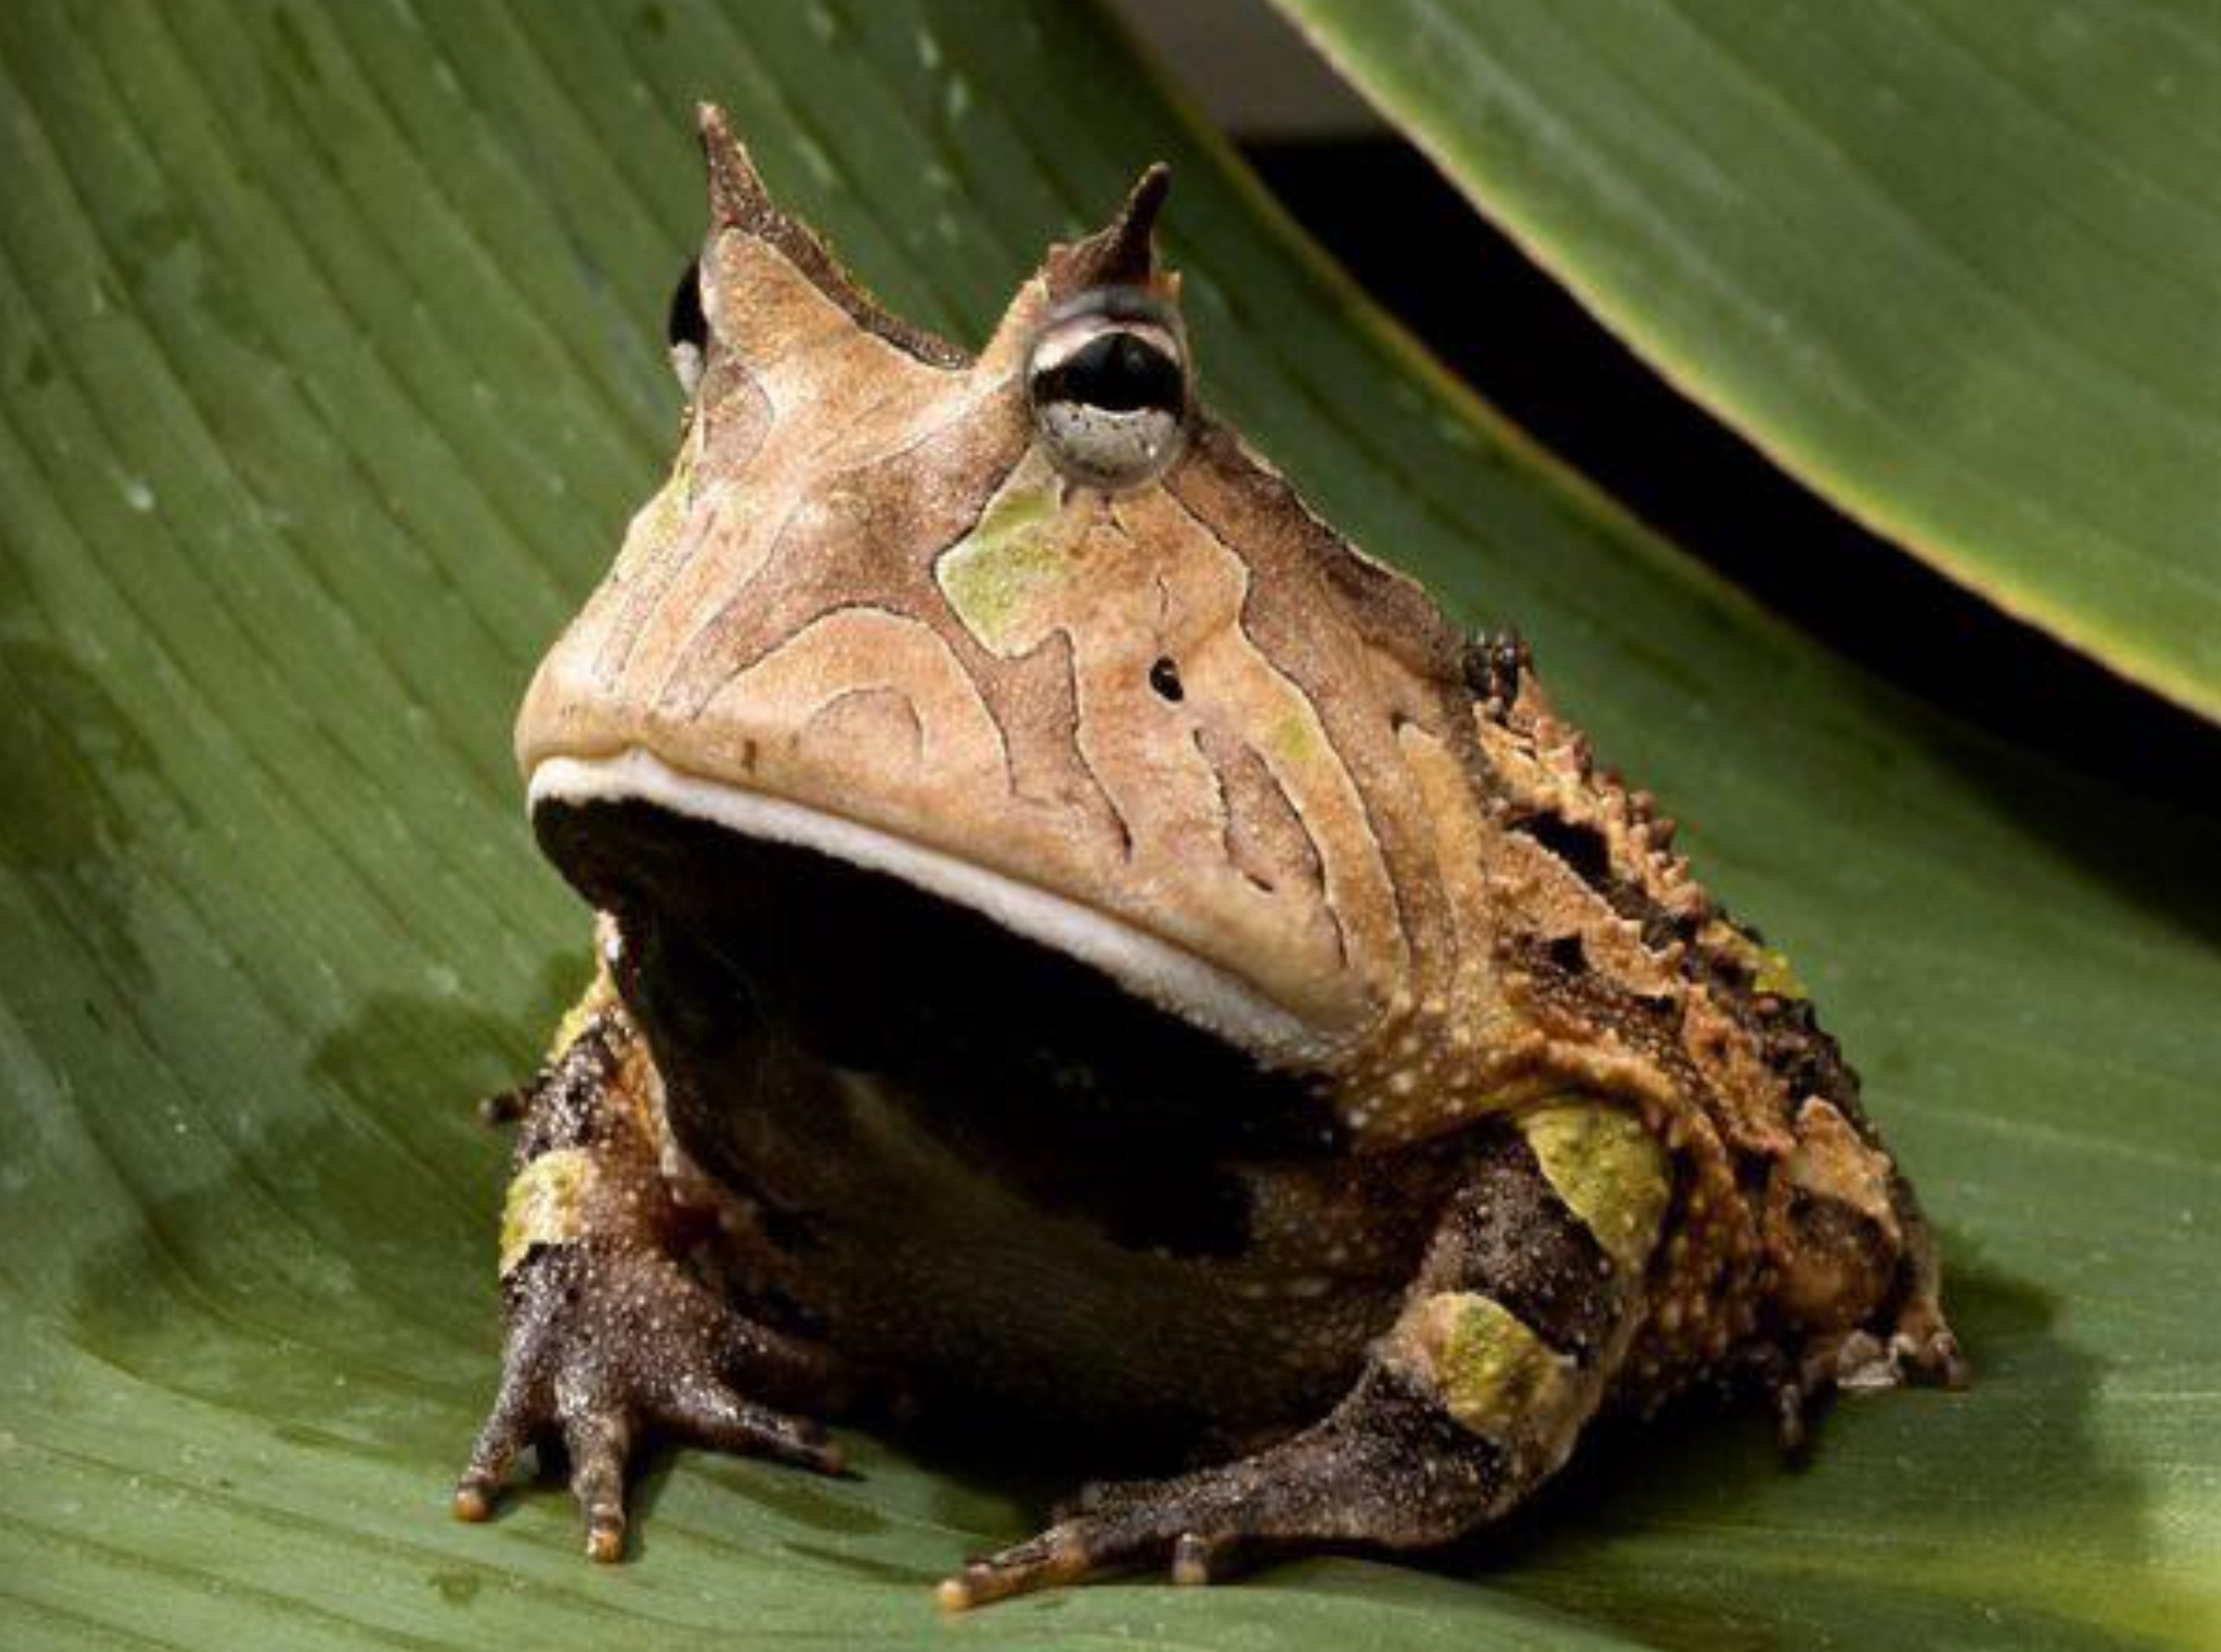 Psbattle This Surinam Horned Frog Thorgift Com If You Like It Please Buy Some From Thorgift Com In 2020 Frog Rainforest Animals Types Of Frogs